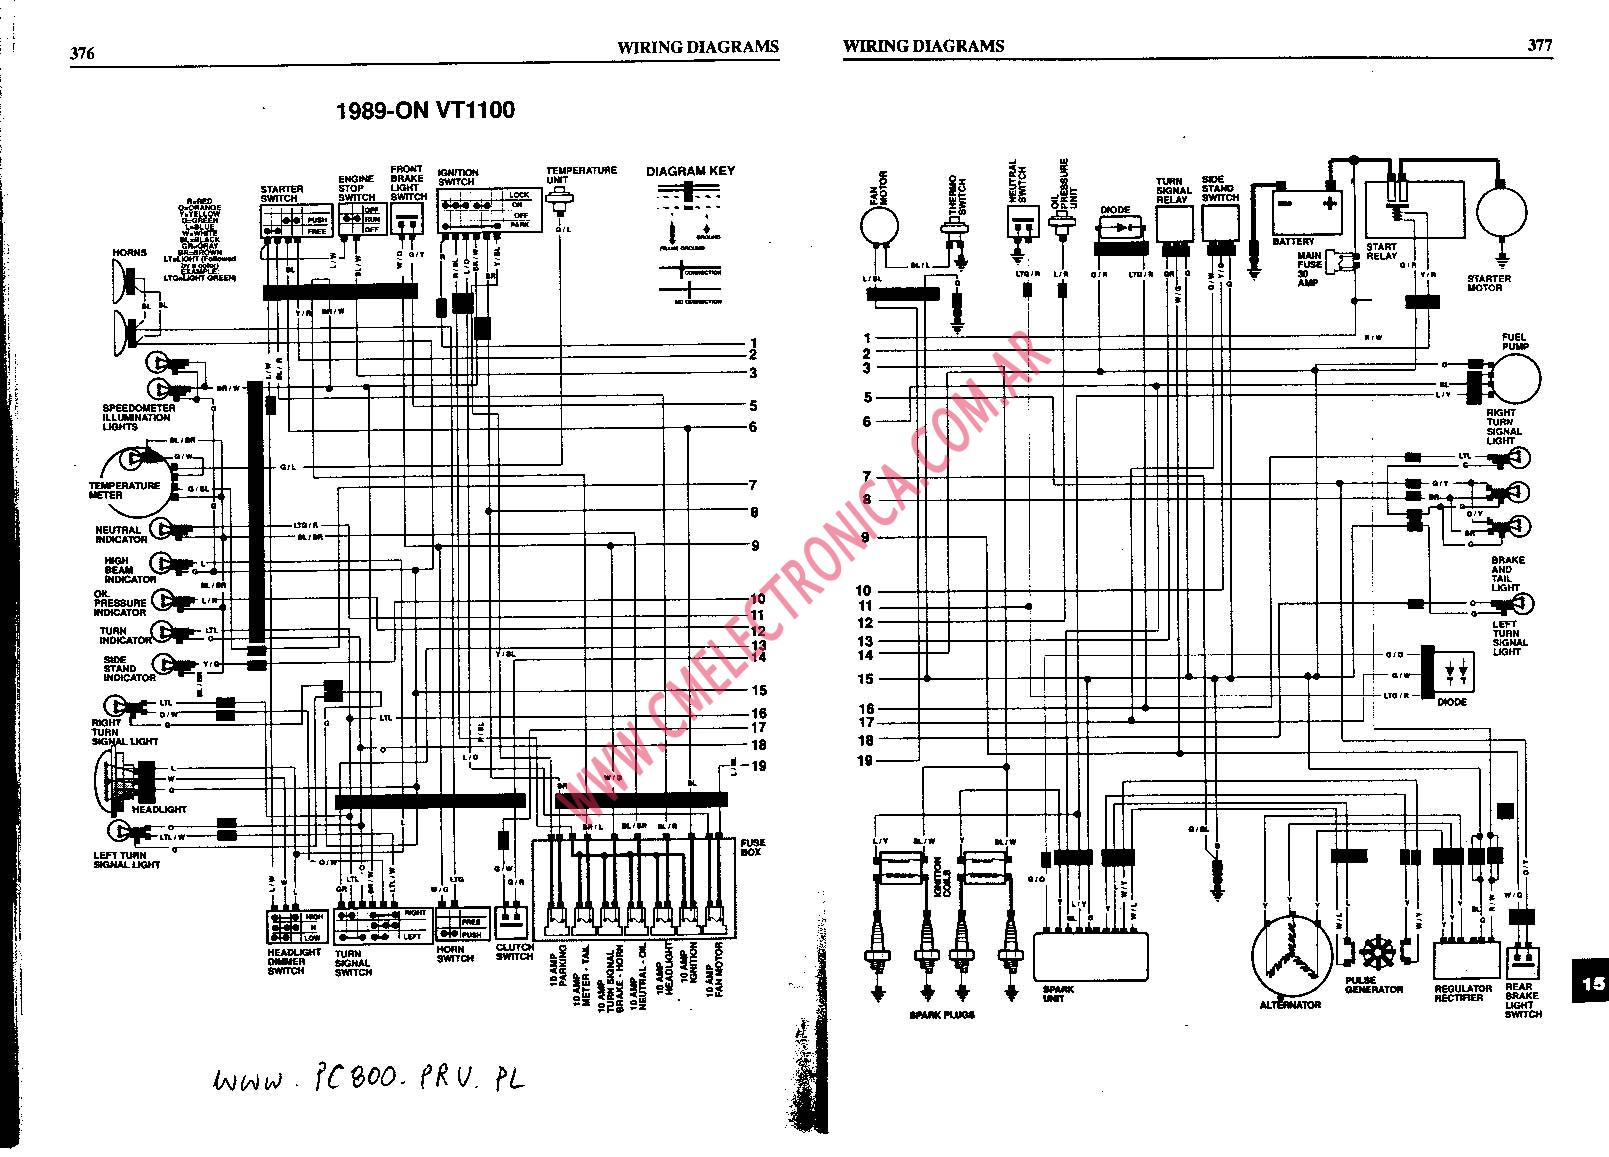 2006 Vw Jetta Wiring Diagram additionally Pontiac Solstice Engine Schematics additionally Justboring Audi C4 100a6 Fuserelay Locations And Information With 2001 Audi A6 Fuse Box besides Localizzazione Centralina Motore Opel Astra H 19 Cdti Z19dth likewise Vw Passat Engine Parts Diagram Volkswagen Diagram Schematic In 2000 Vw Passat Vacuum Diagram. on audi a4 radio wiring diagram